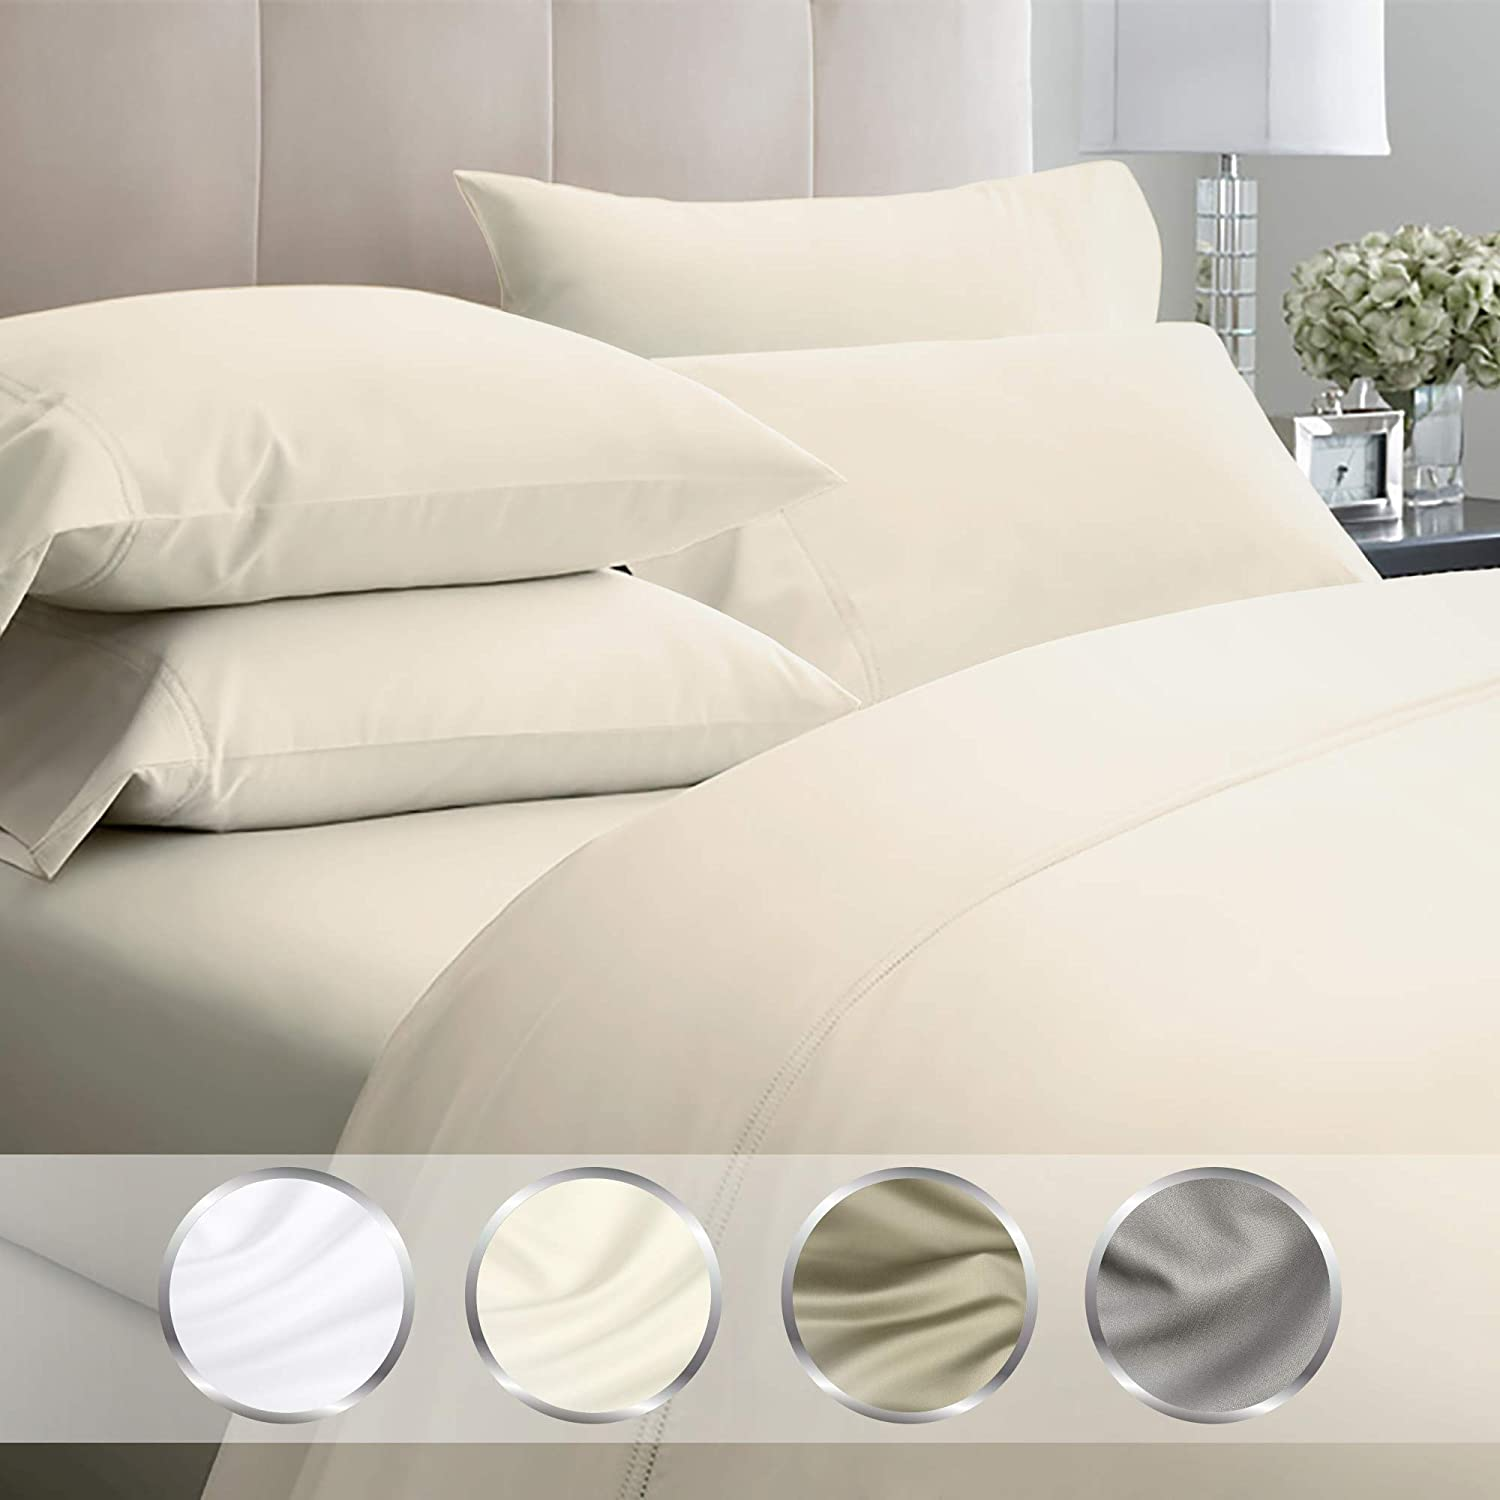 Long-Staple Combed Cotton Bed Pillow Covers for Sleeping Soft /& Silky Sateen Weave California Design Den 1000-Thread-Count Cotton Ivory Standard Size Pillowcases